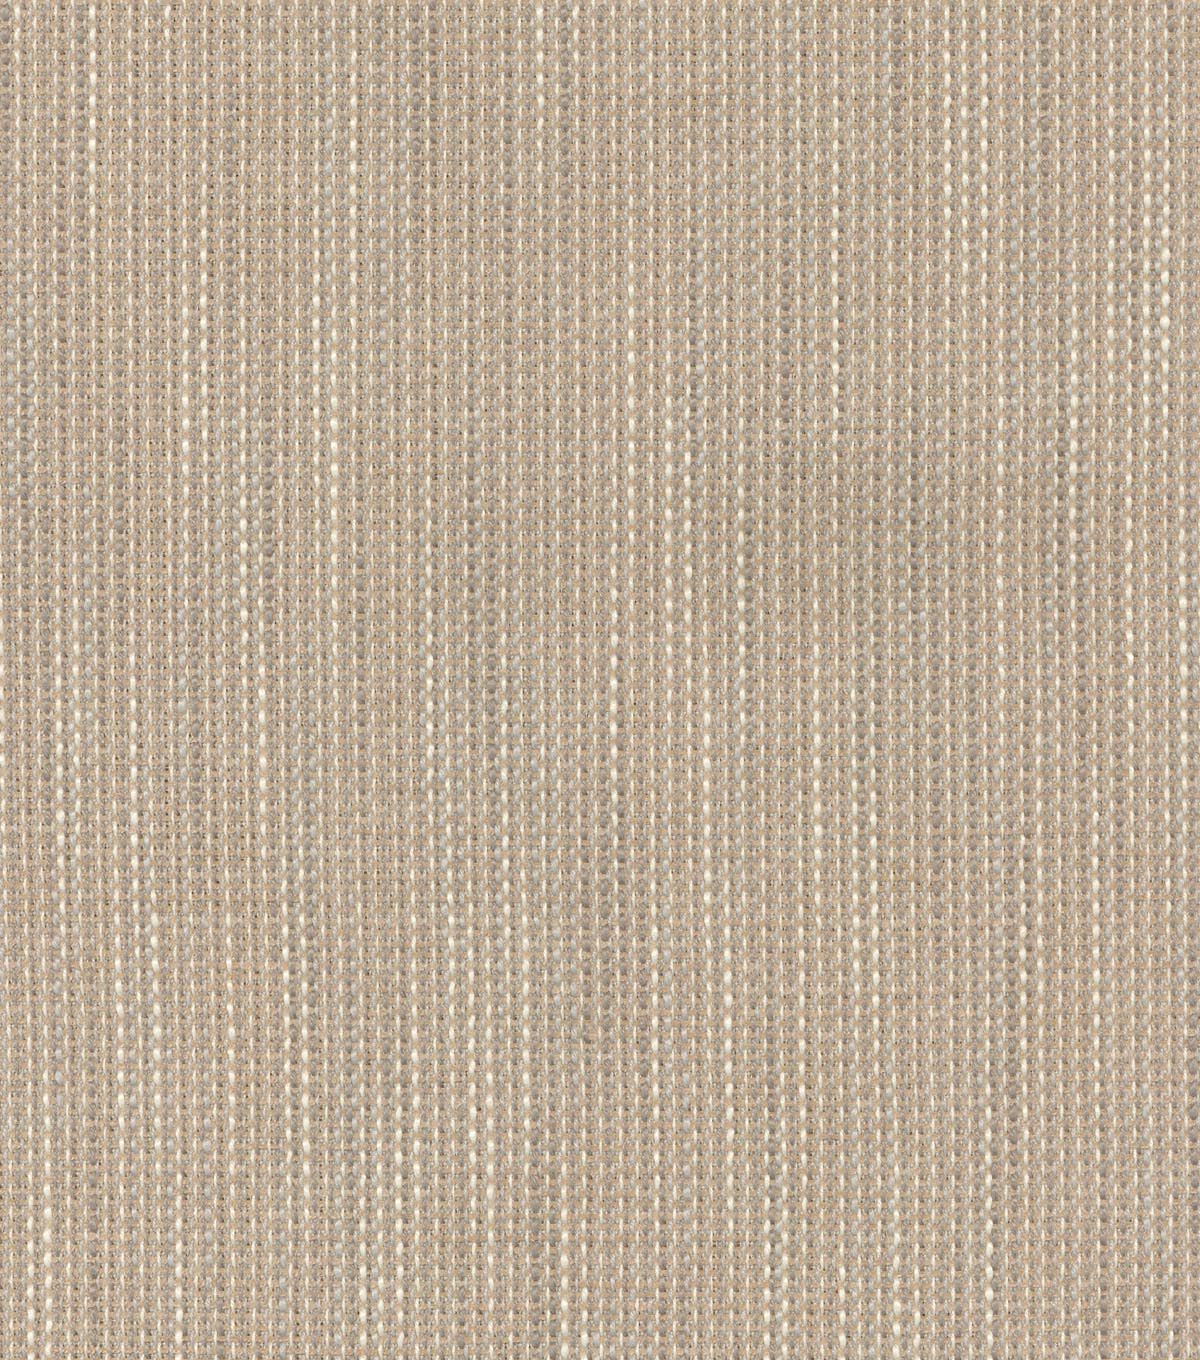 "Home Decor 8""x8"" Swatch Fabric-Waverly Varick Stone"